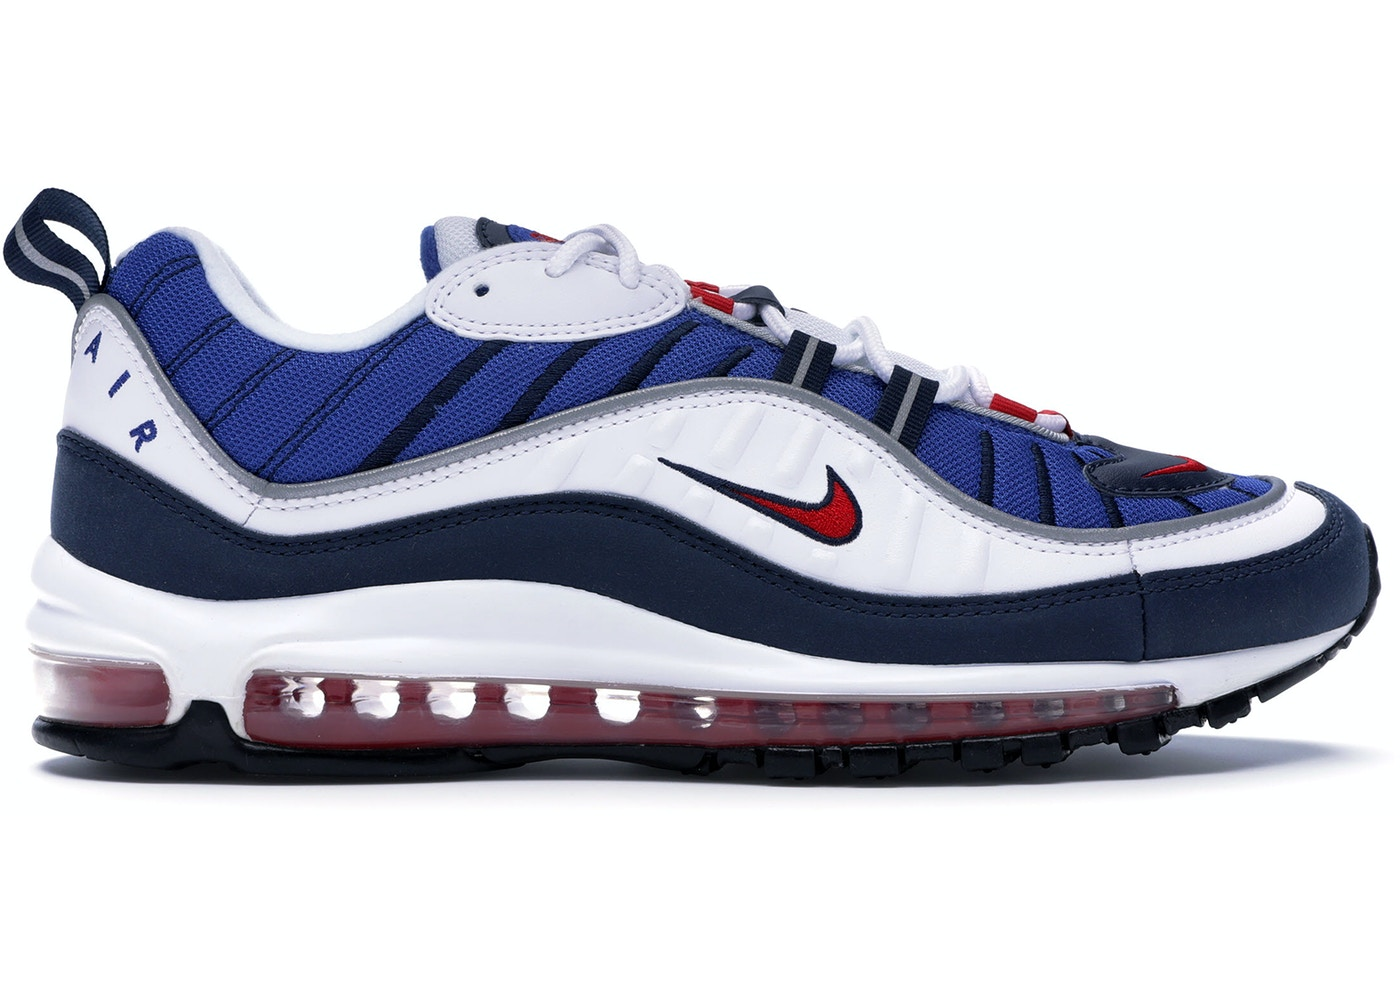 low priced e6a0b 5e015 Air Max 98 Gundam (2018)